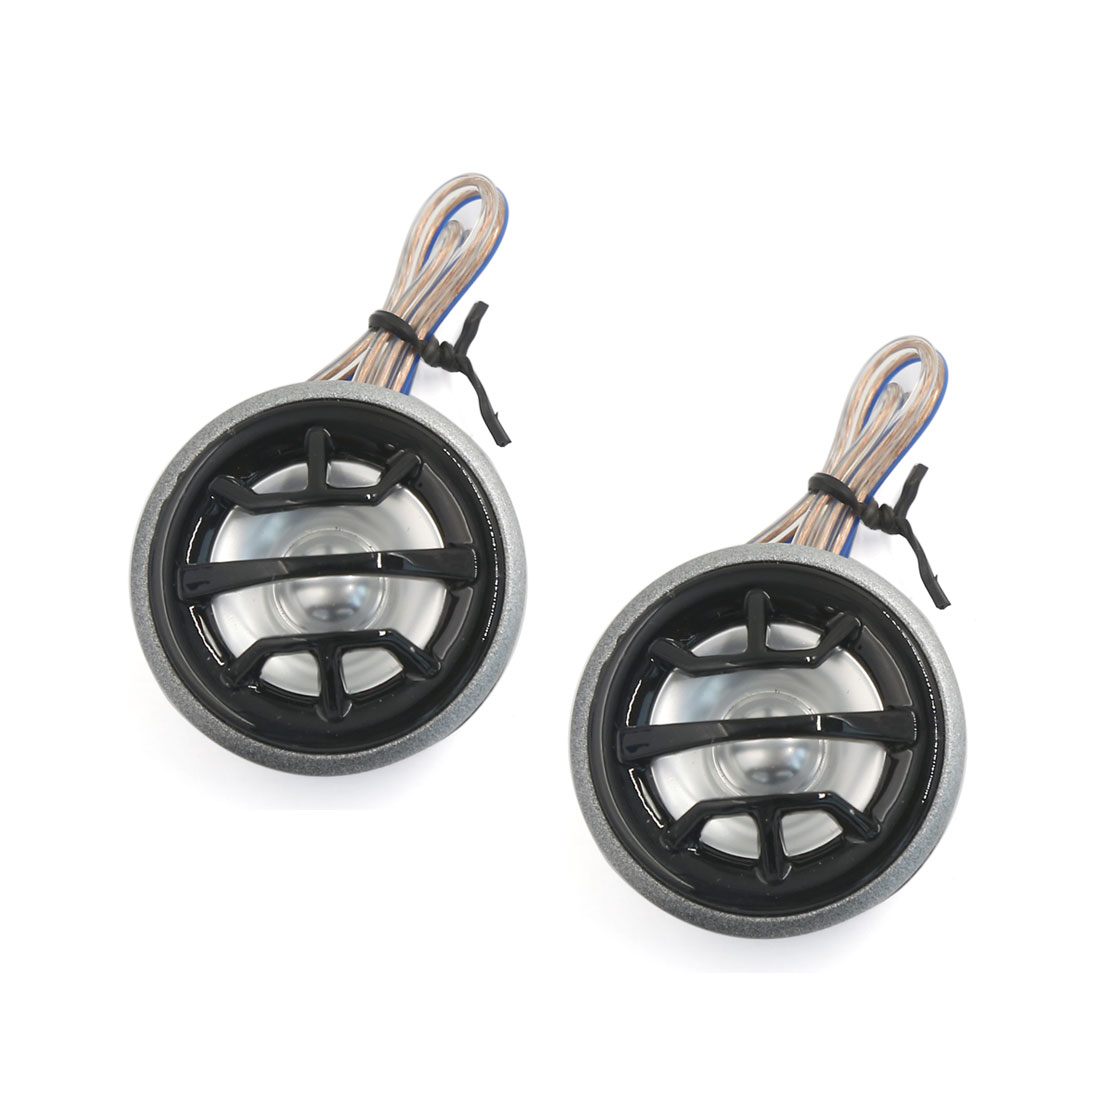 130W Super Power Car Speaker Audio System Loud Dome Tweeter Speakers 2 Pcs